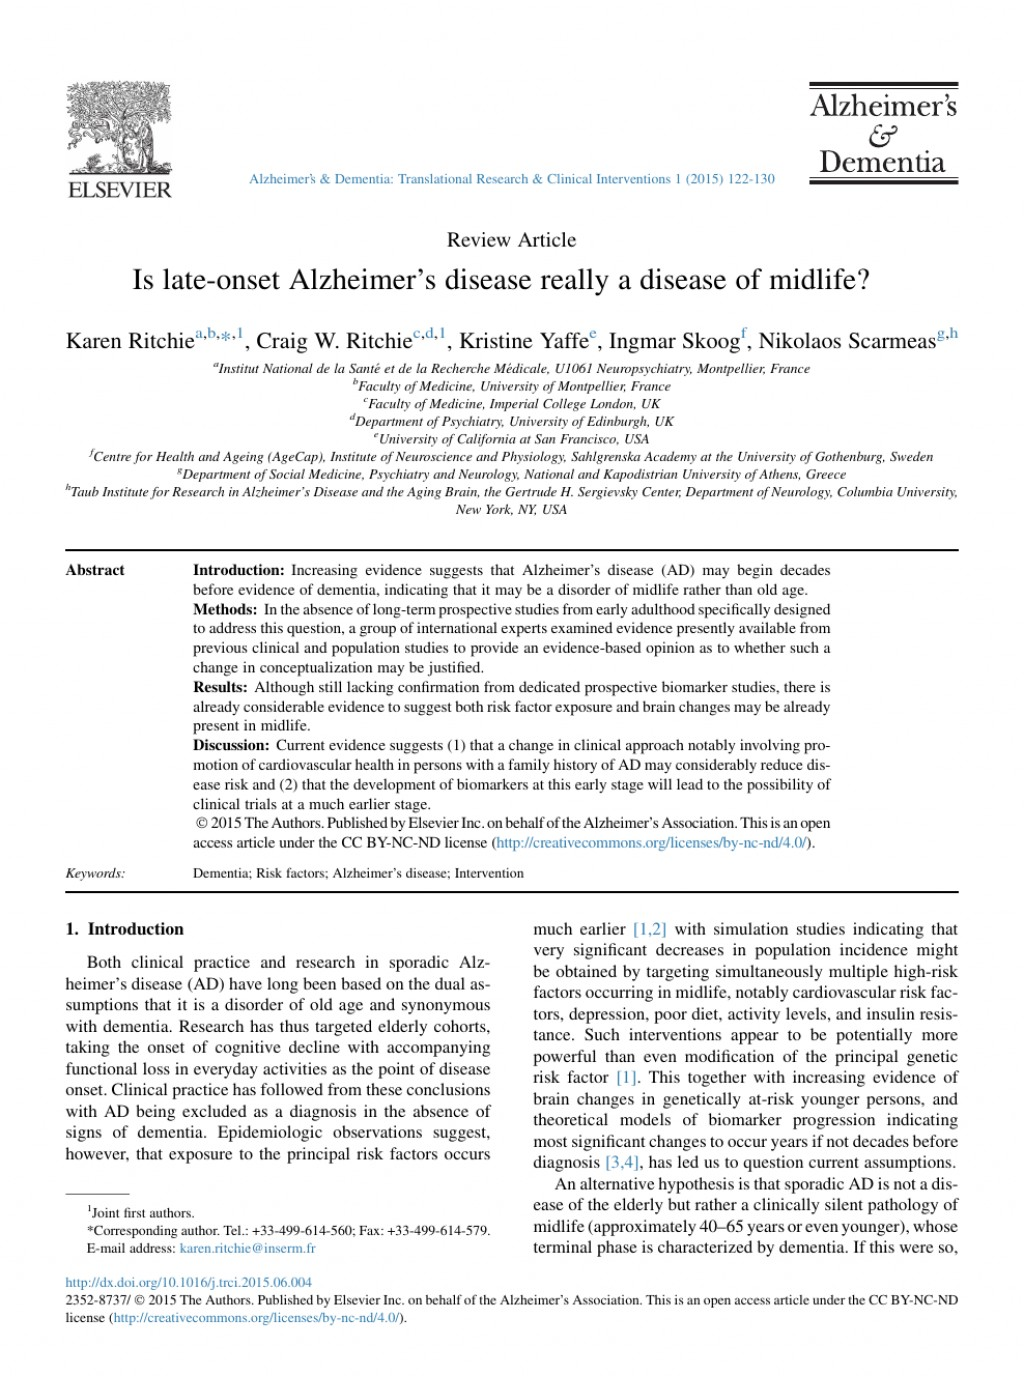 002 Abstract Alzheimers Research Paper Exceptional Alzheimer's Large